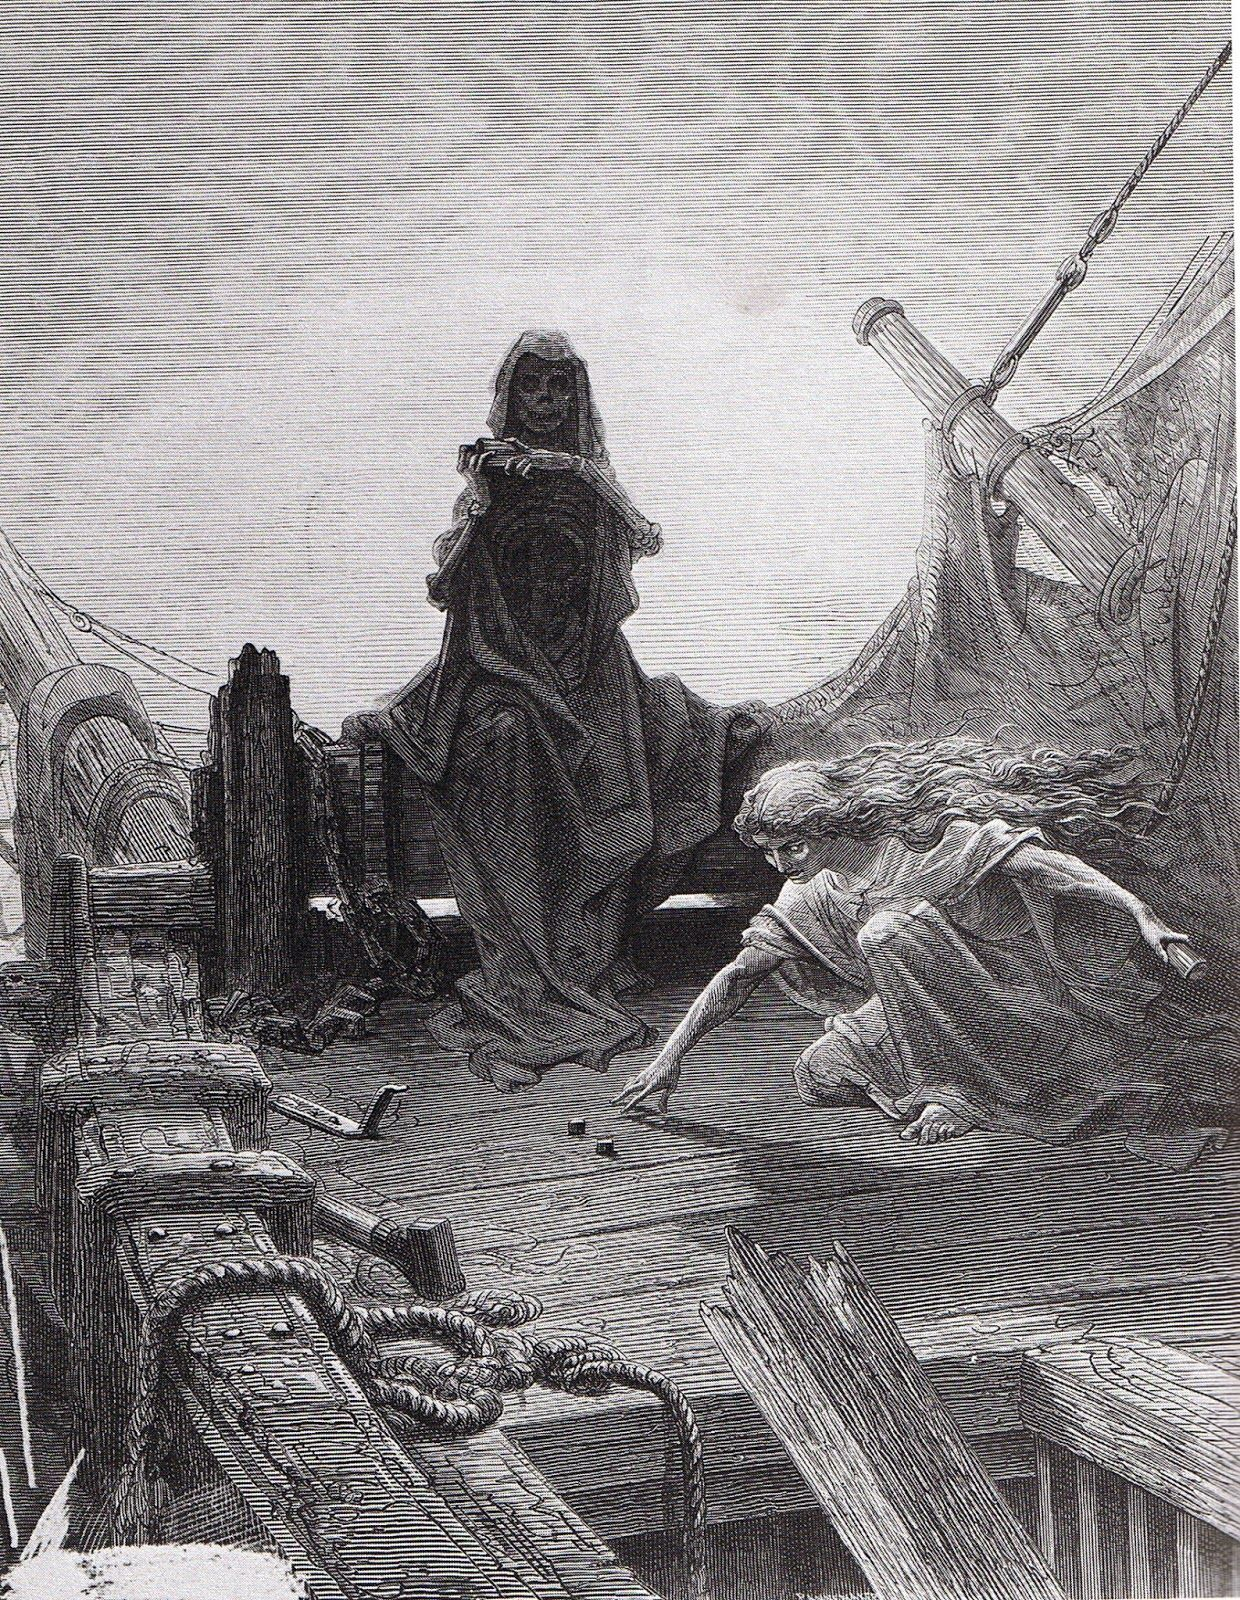 gustave dor atilde copy illustration pour the rime of the ancient mariner gustave doratildecopy illustration pour the rime of the ancient mariner de coleridge the